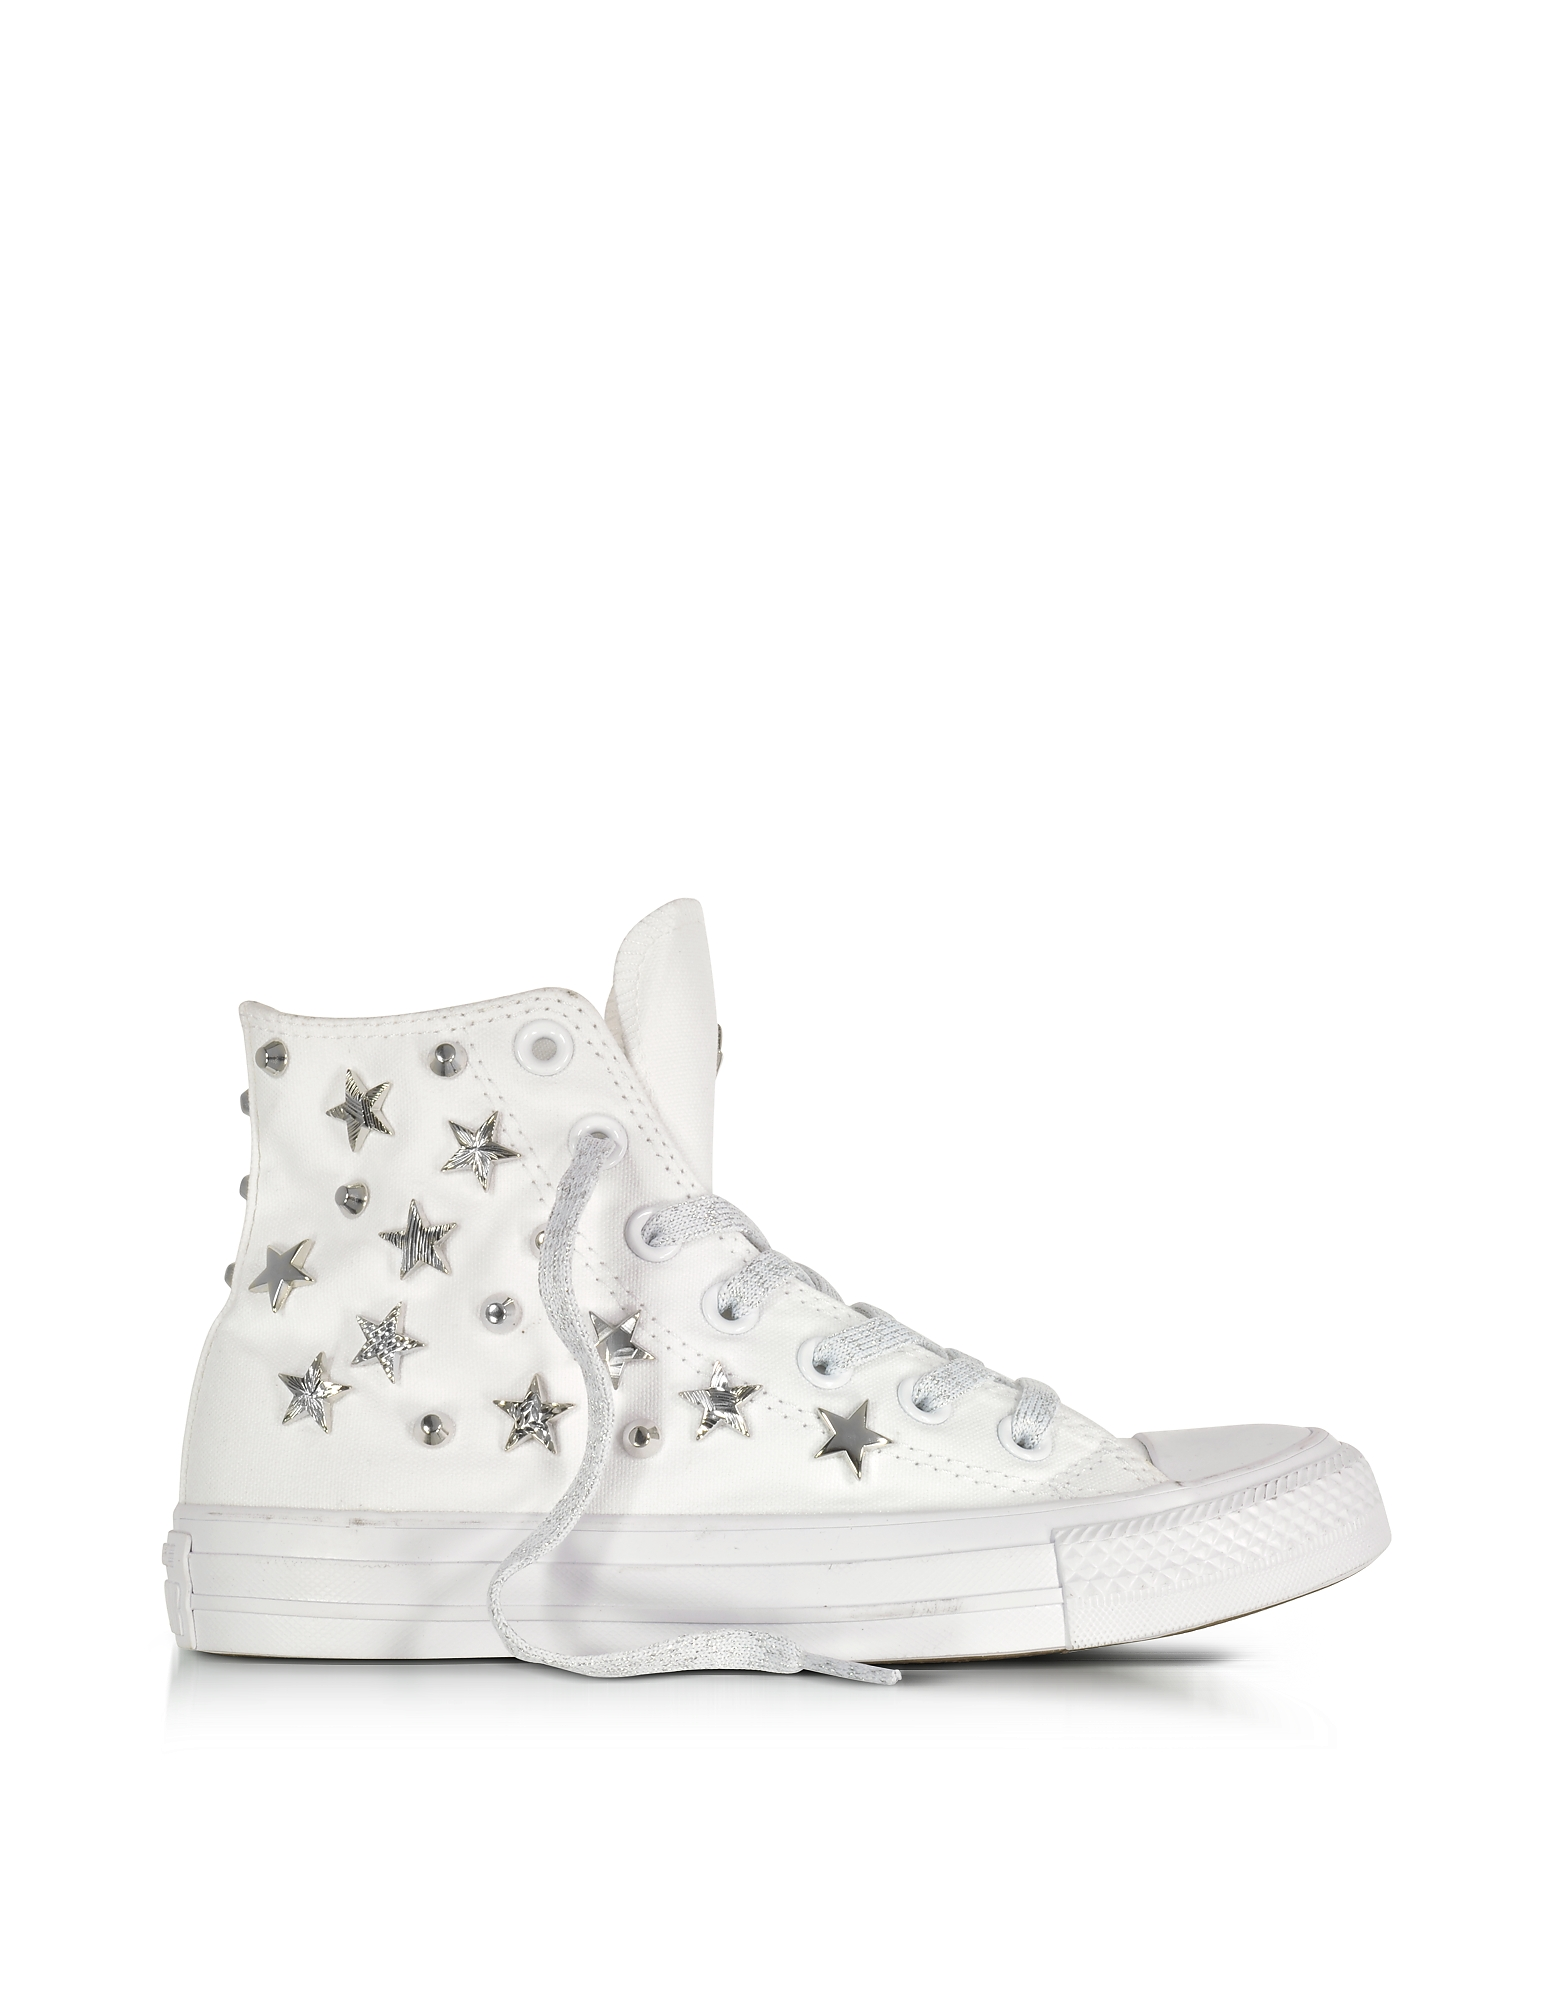 Converse Limited Edition Shoes, Chuck Taylor All Star Hi White Sneakers w/Stars and Studs